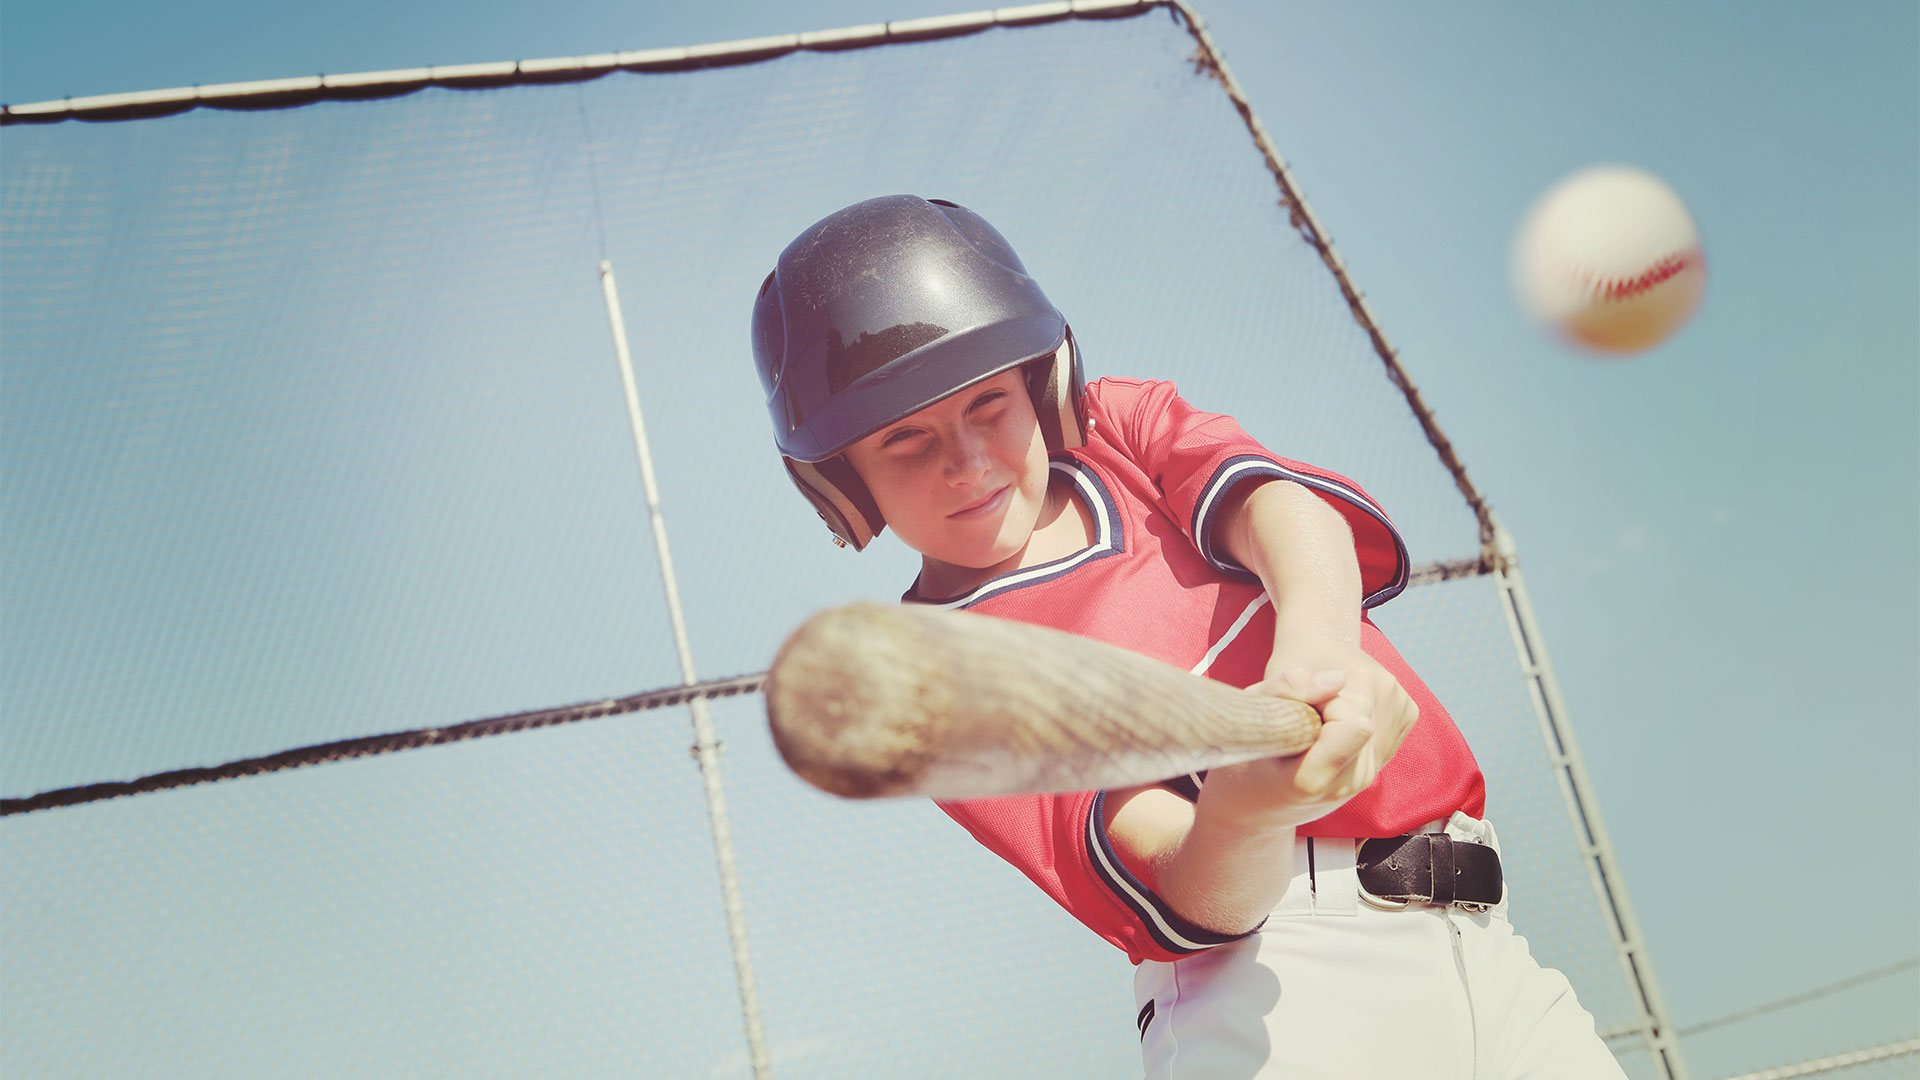 Youth baseball player batting